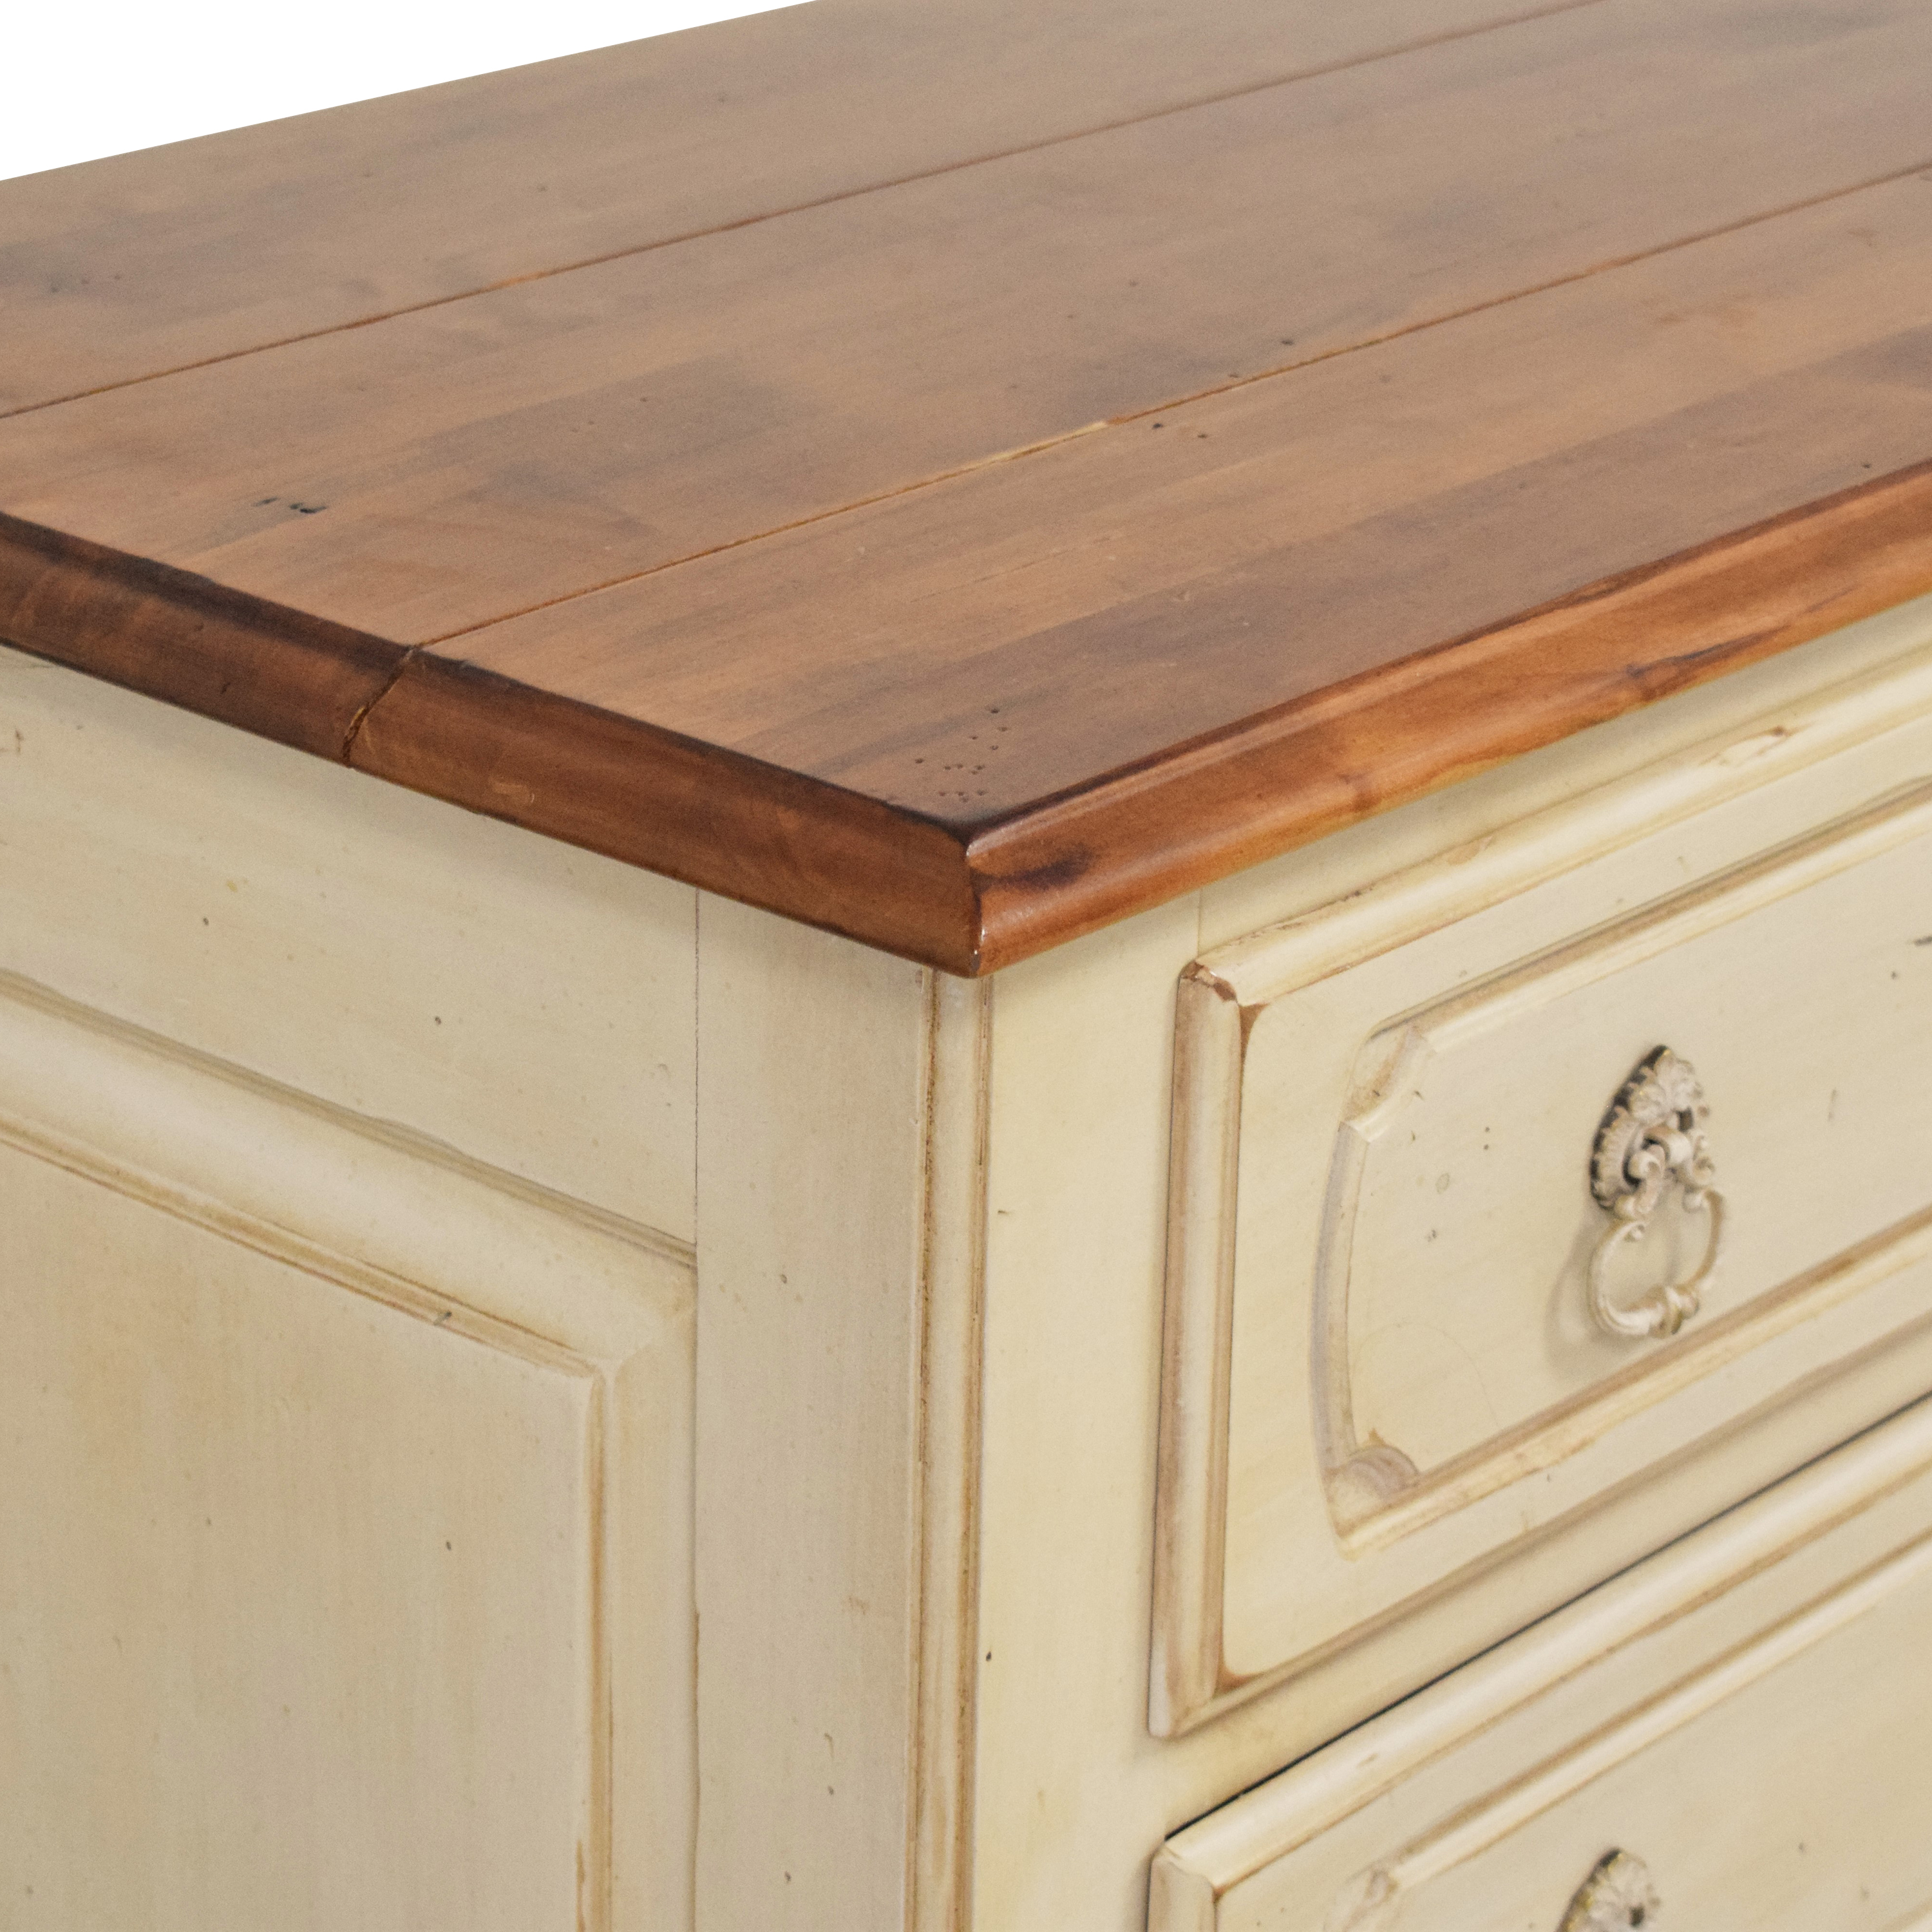 Ethan Allen Ethan Allen Legacy Collection Three Drawer Nightstand nj